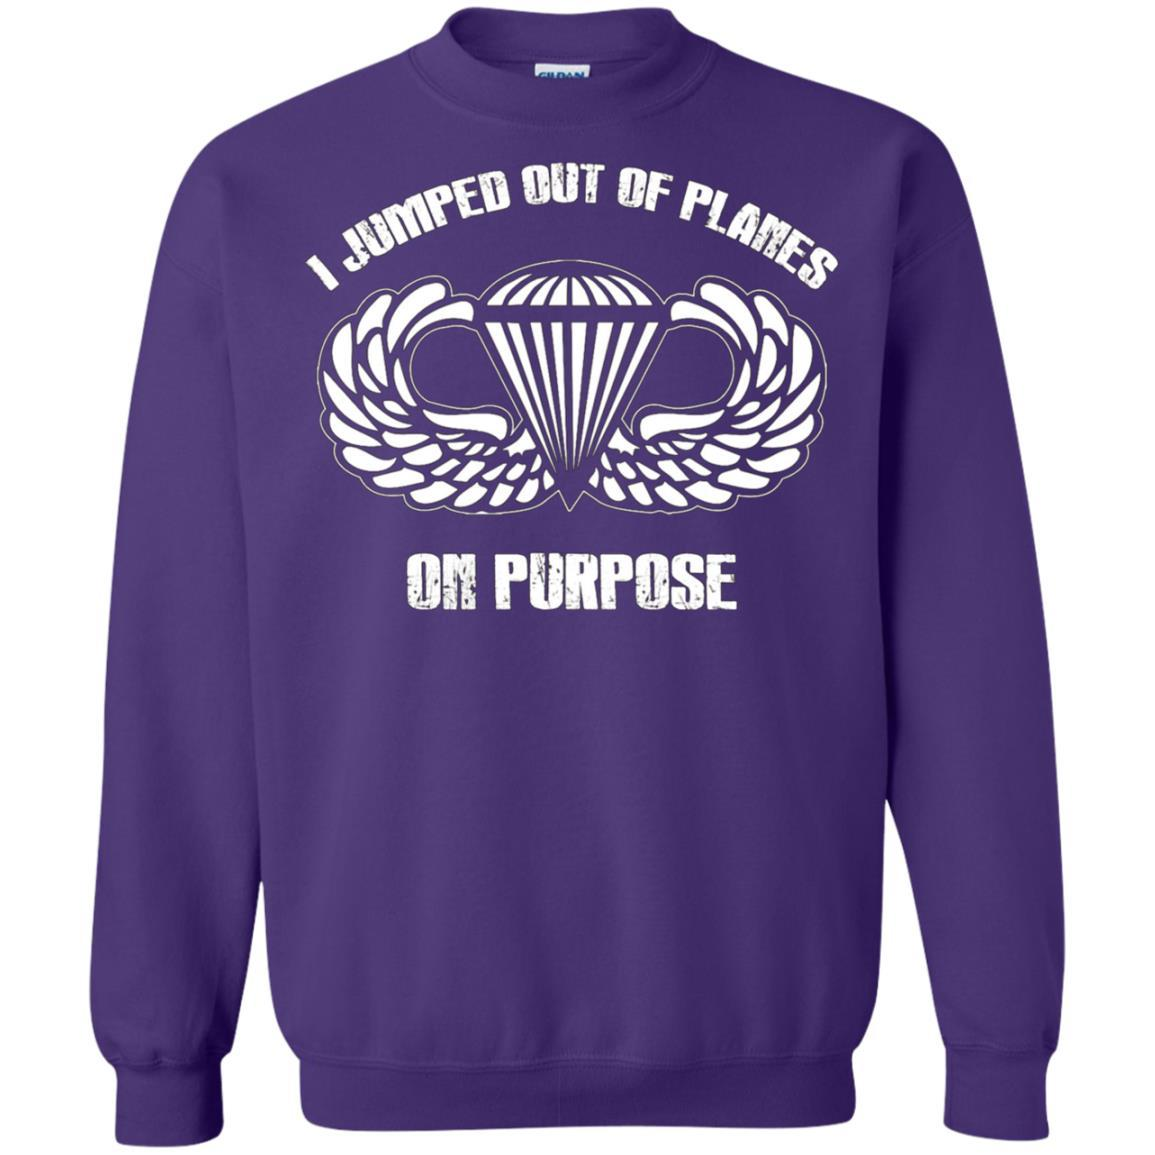 I jumped out of planes on purpose, Airborne - Crewneck Pullover Sweatshirt Purple / 5XL